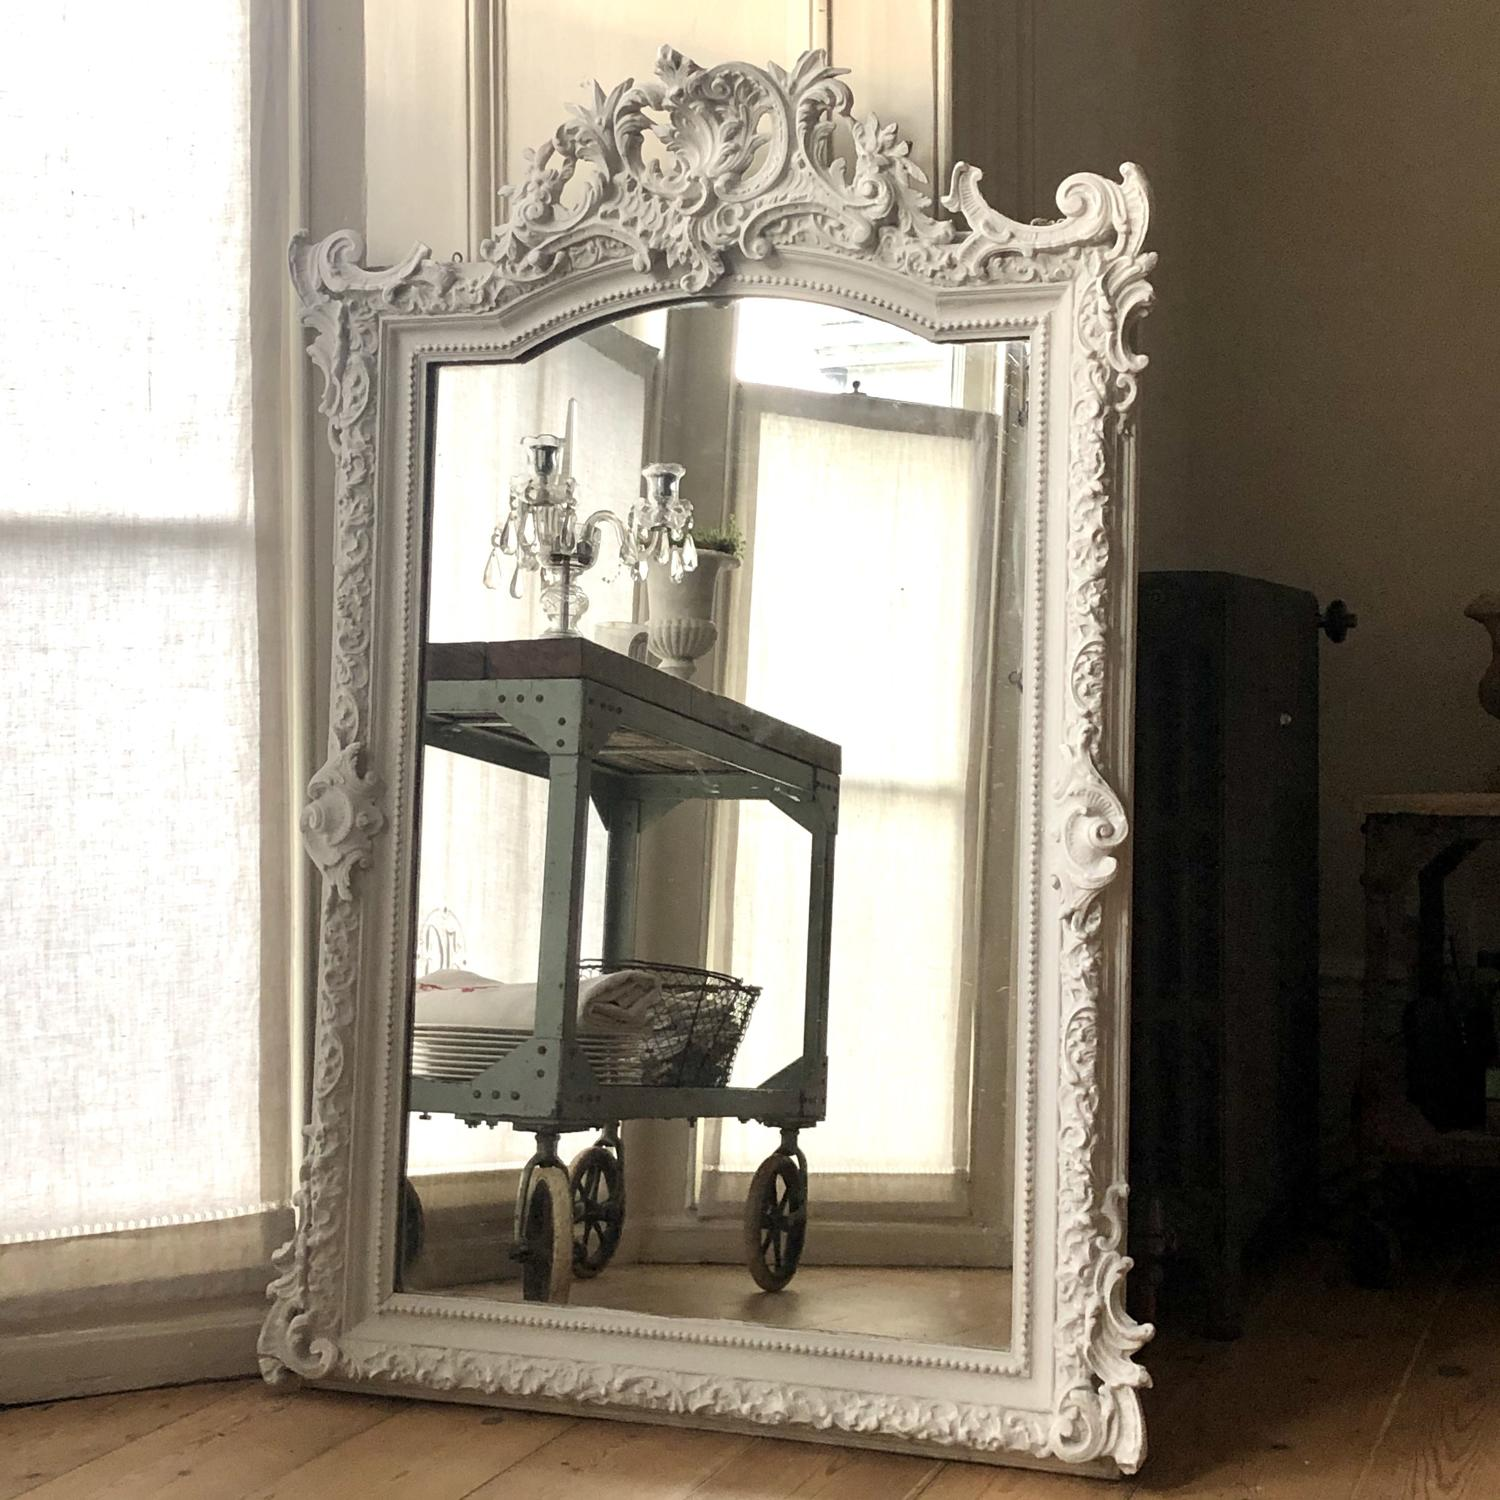 French antique Louis XV crested mirror